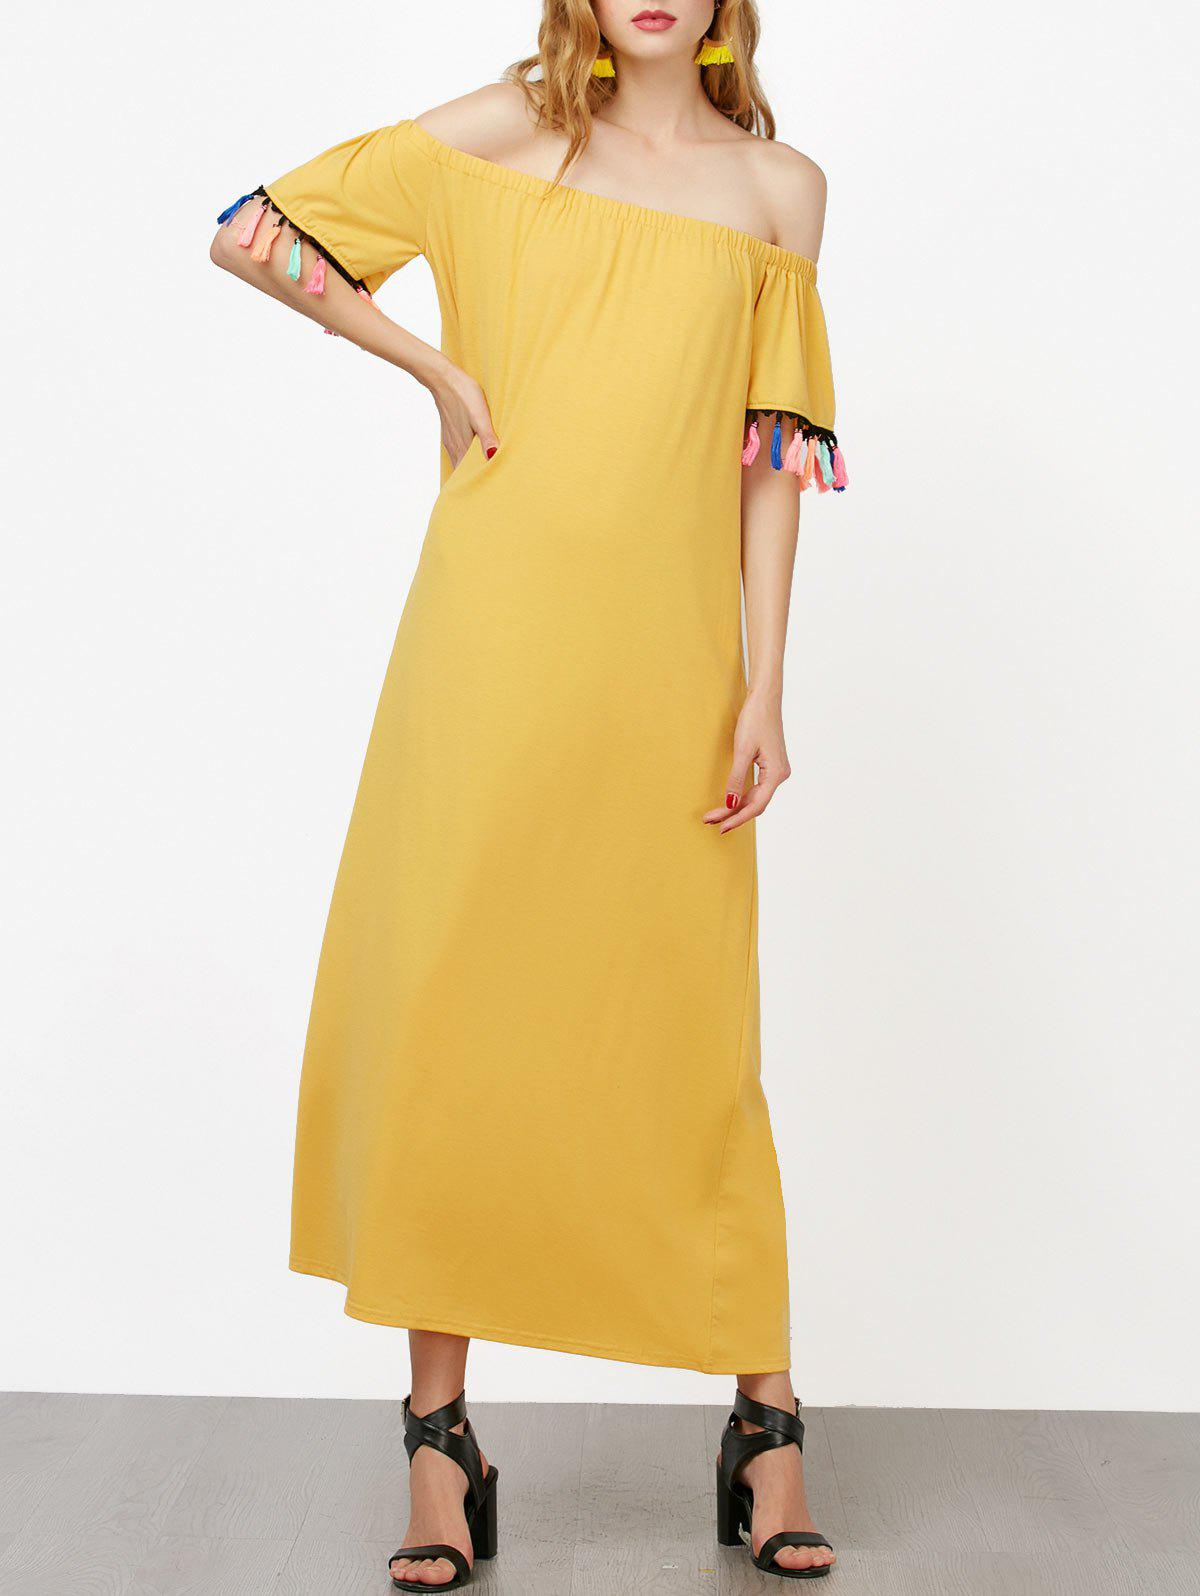 Off The Shoulder Short Sleeve Maxi Dress - YELLOW S